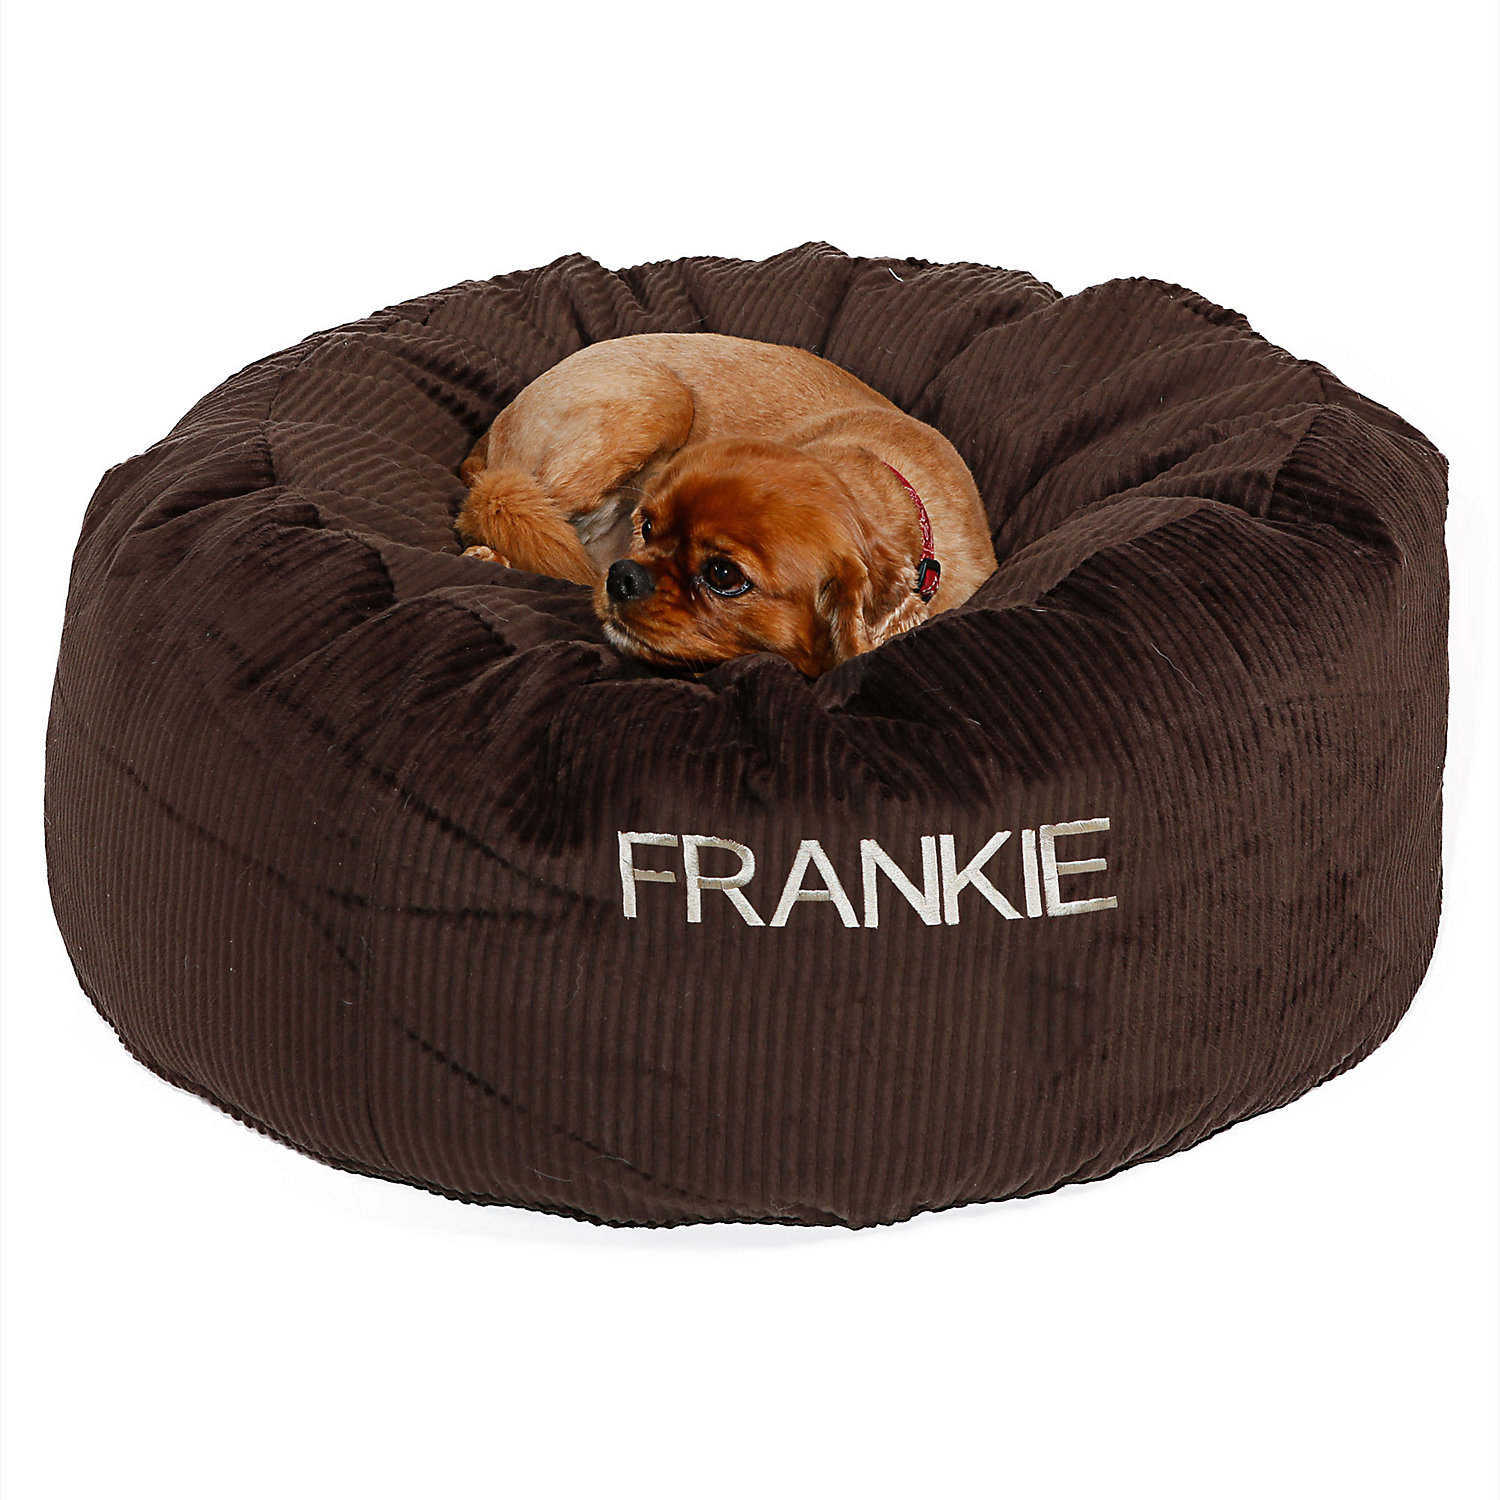 Doctors Foster  Smith Personalized Deluxe Warm  Cuddly Slumber Ball Chocolate Dog Beds